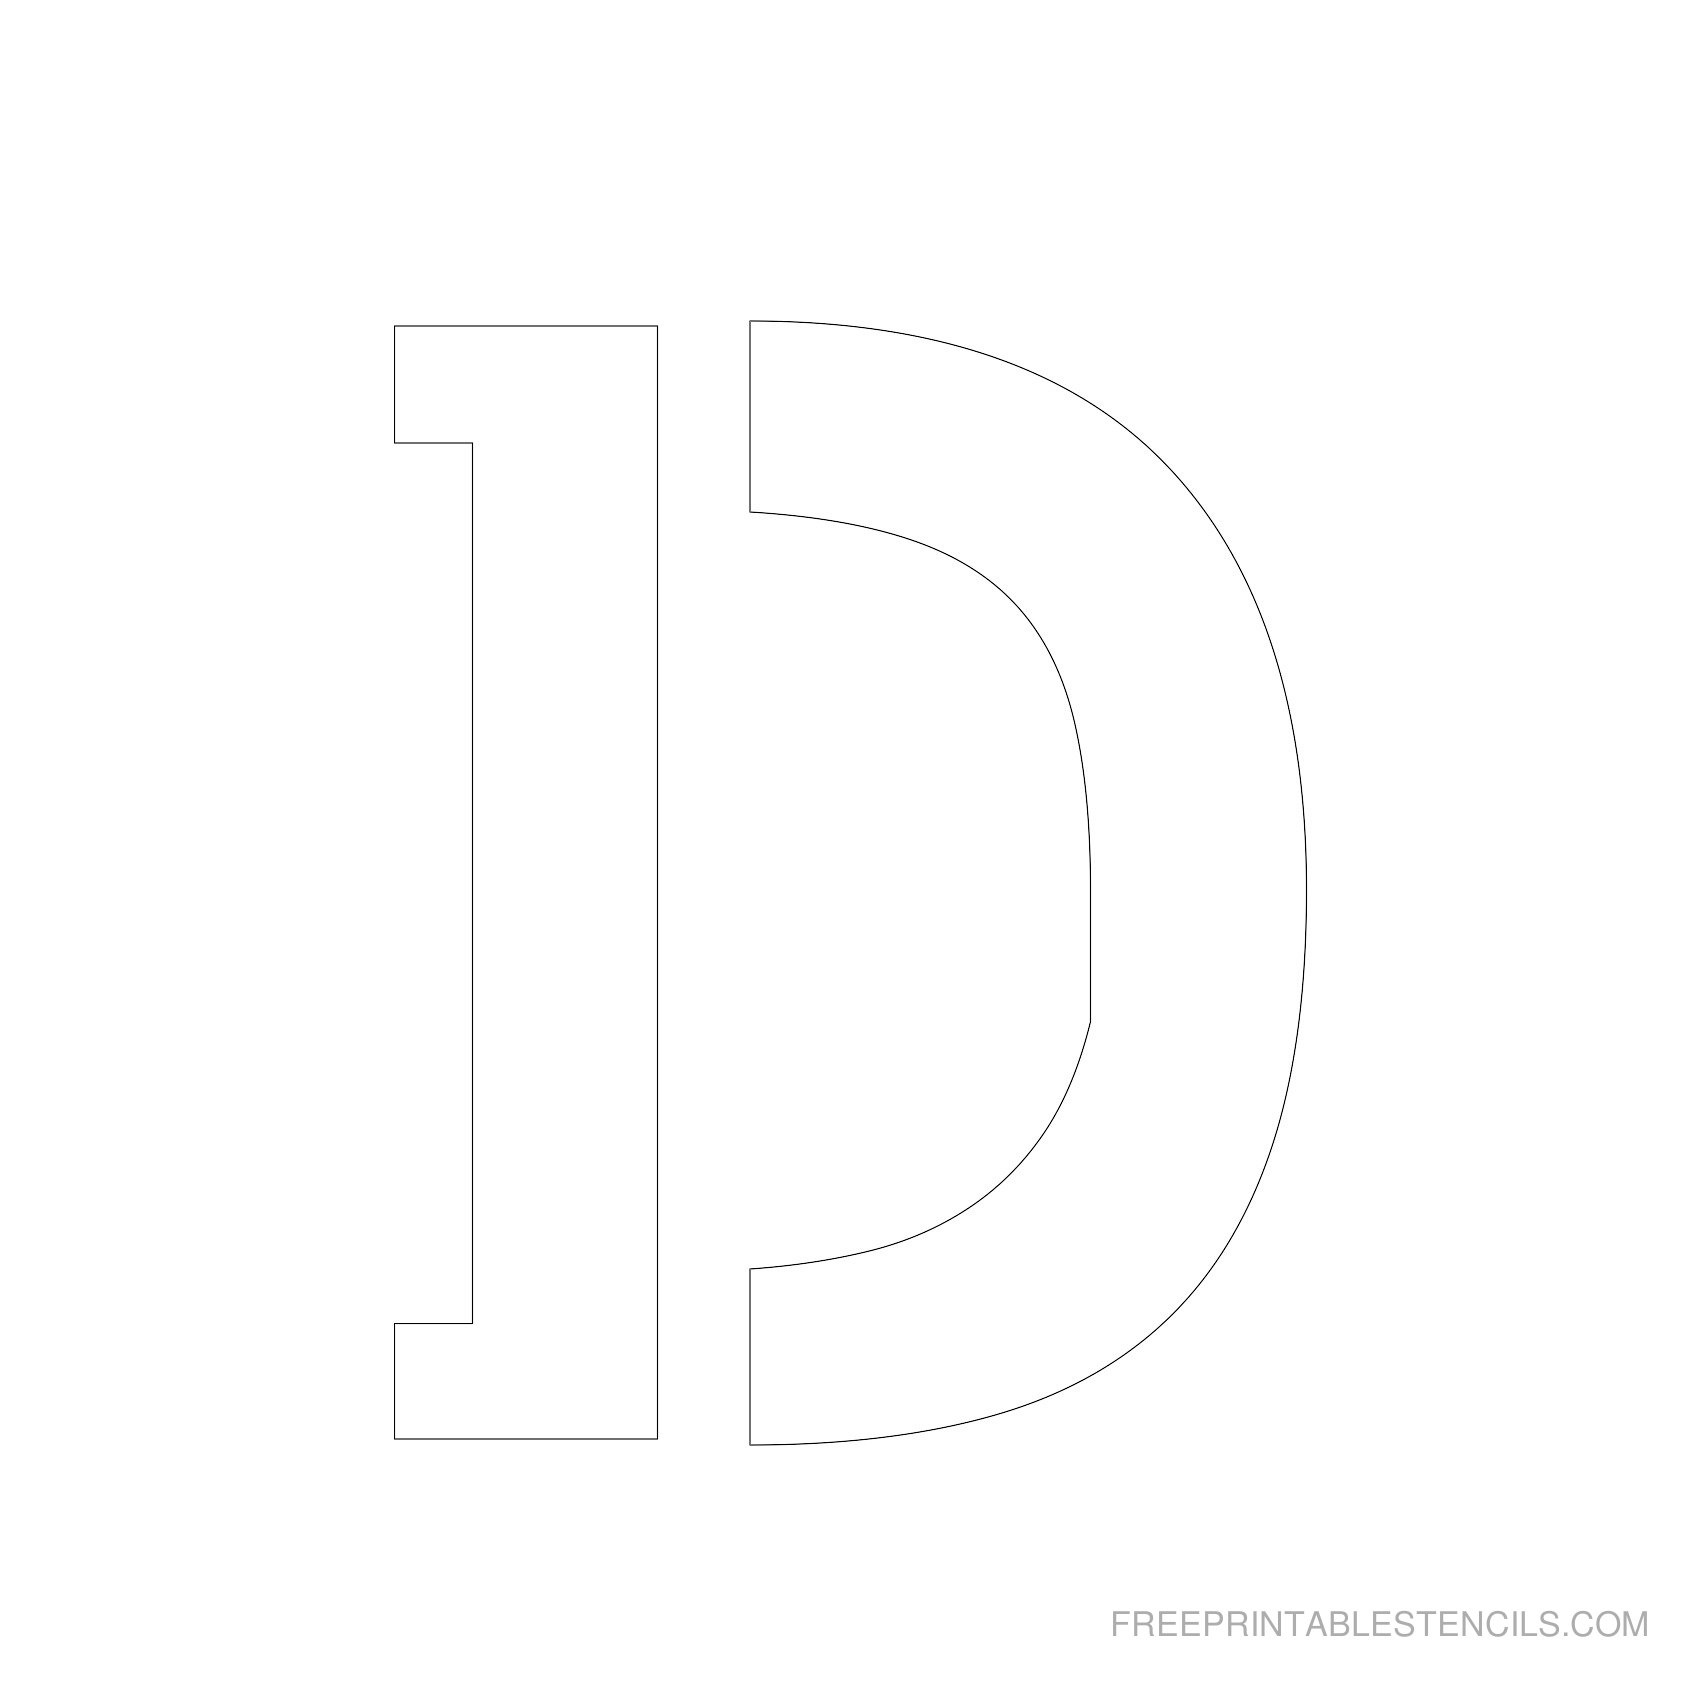 Letter Stencils To Print | Free Printable Stencils - Online Letter Stencils Free Printable